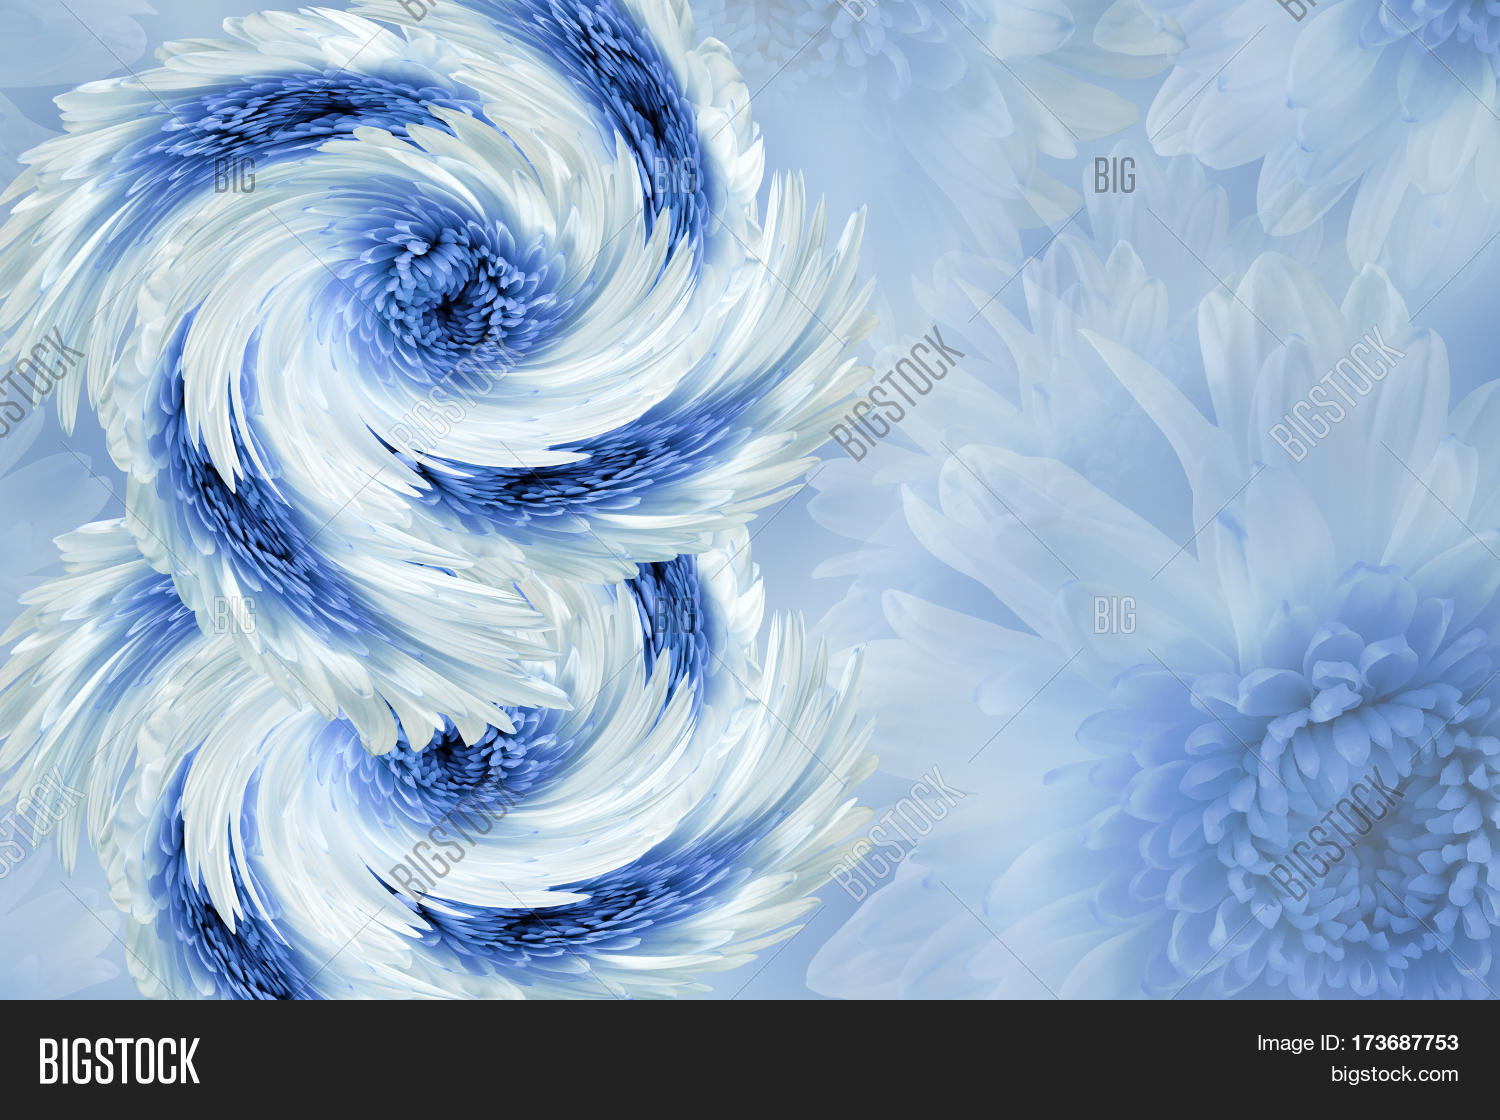 Flowers on blurry white blue background blue white flowers flowers on blurry white blue background blue white flowers chrysanthemum floral collage dhlflorist Gallery